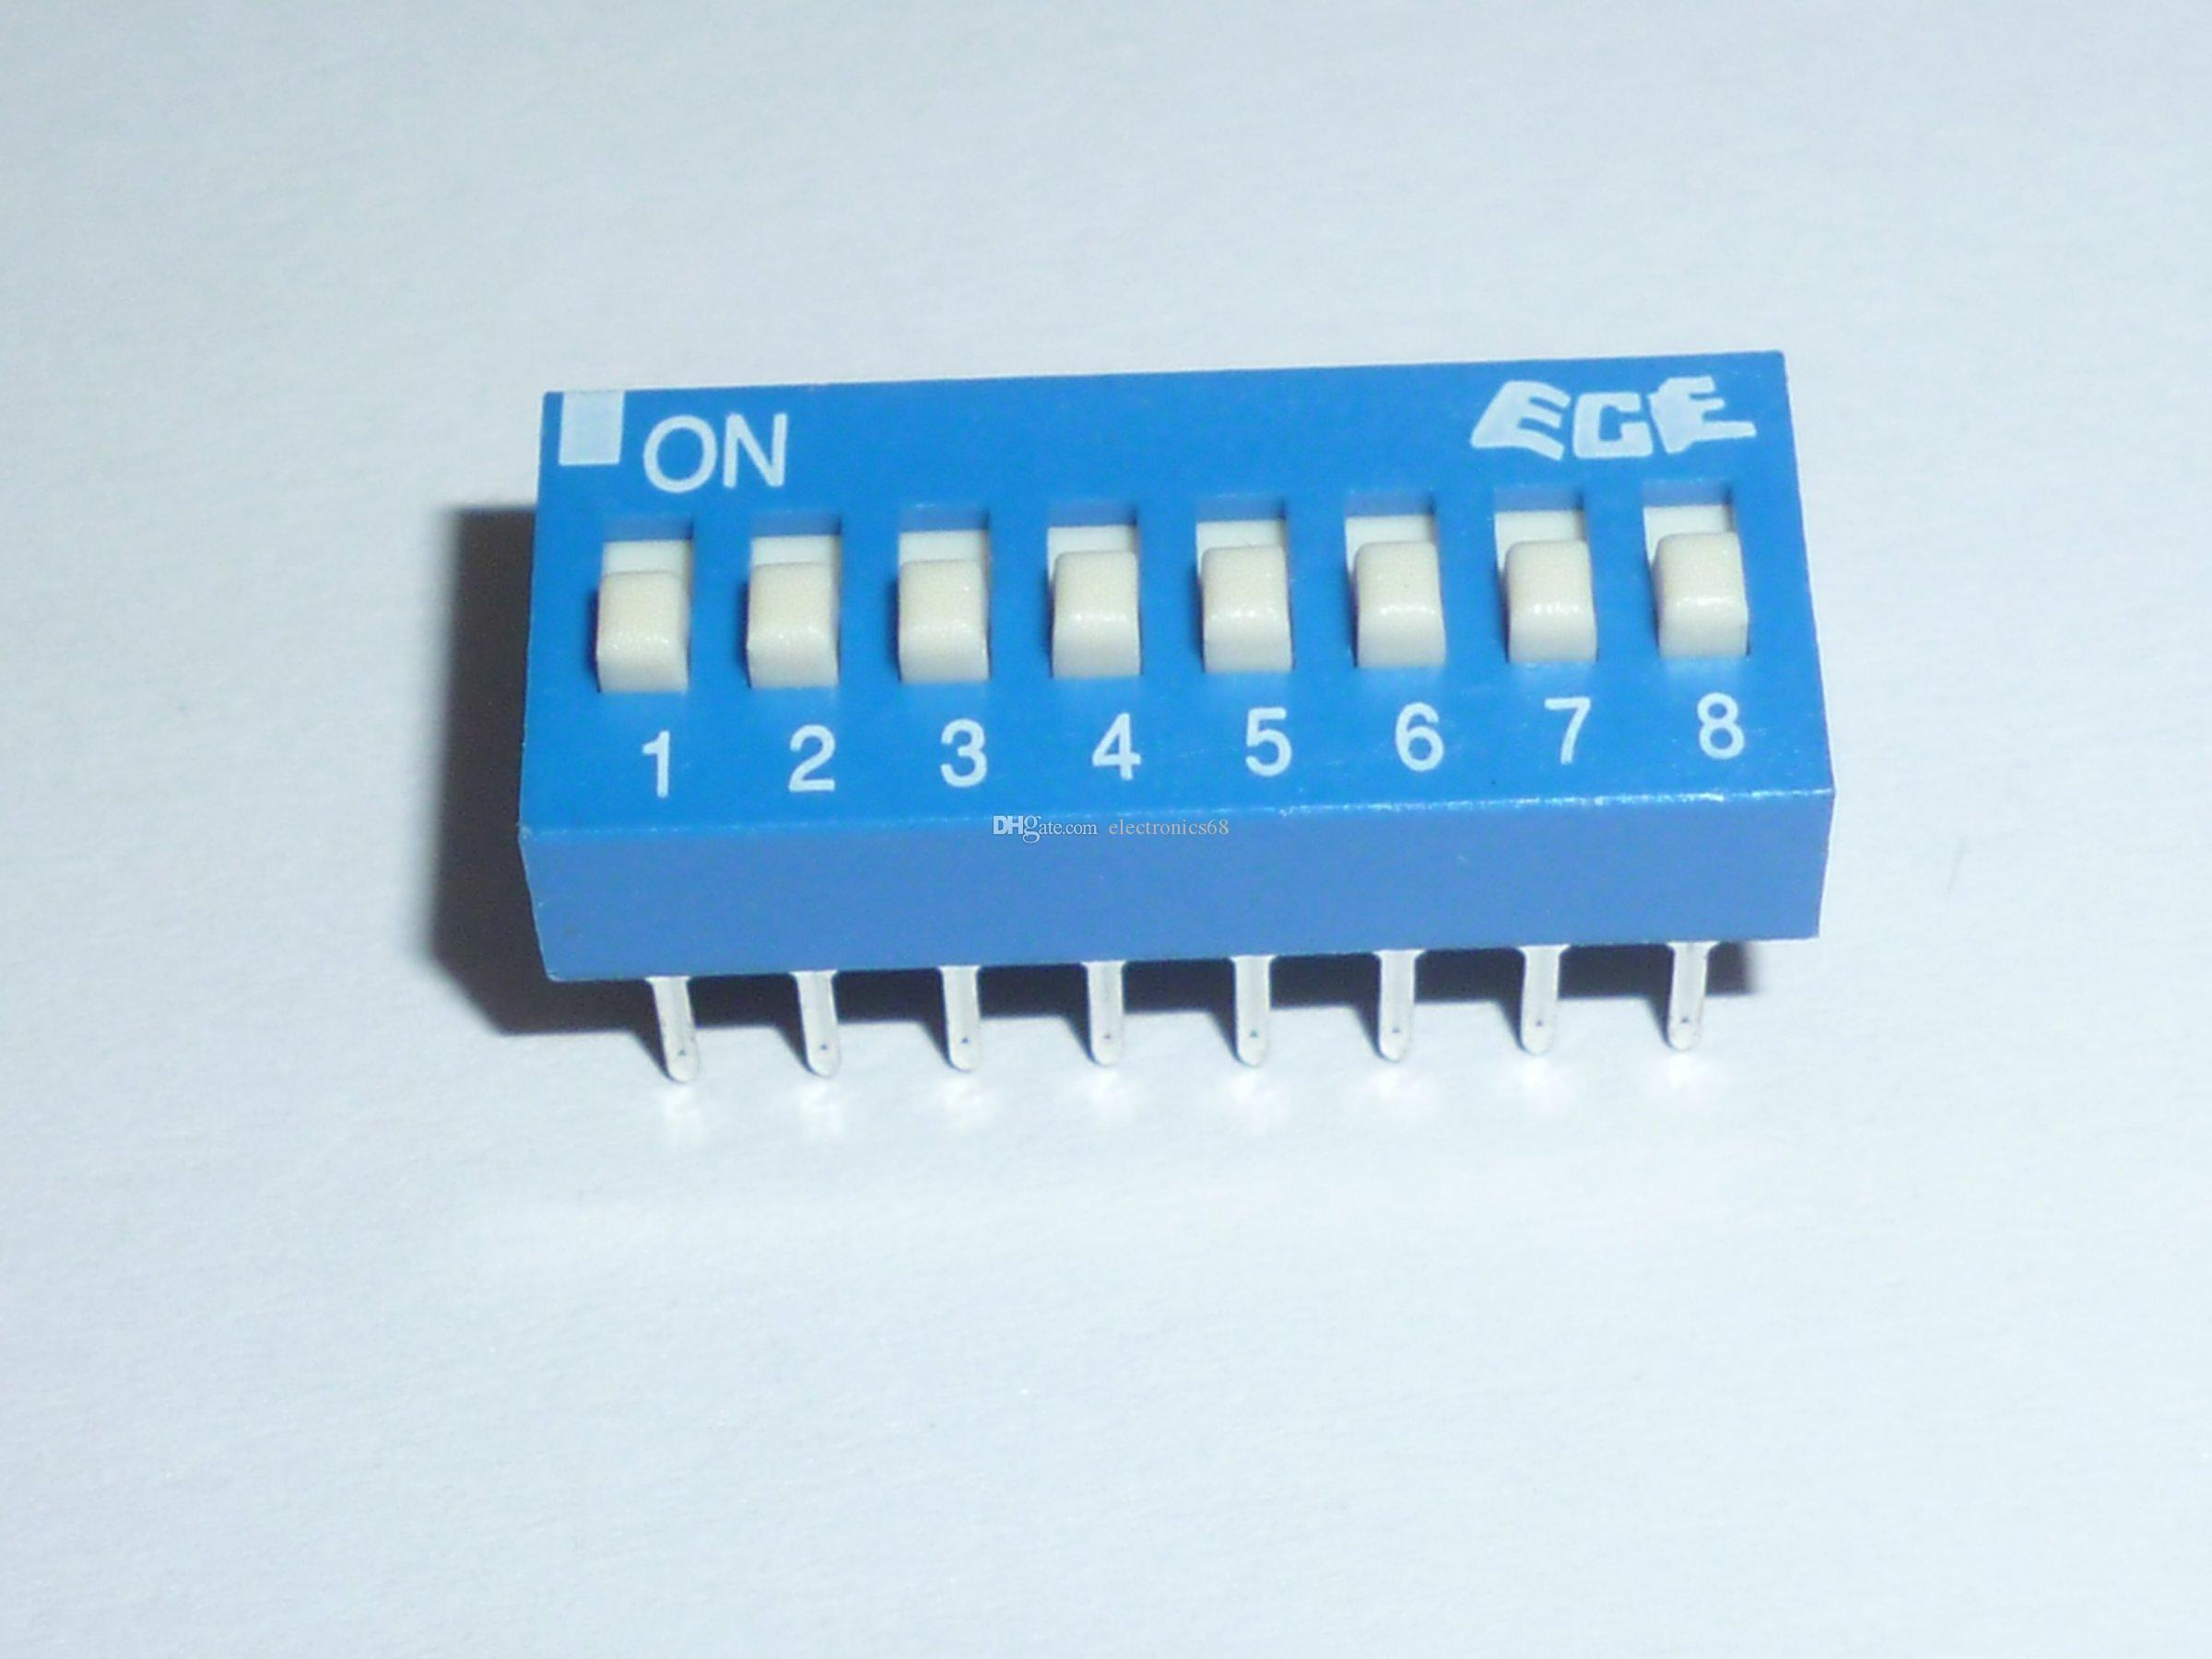 Eds107sz Dip Switch Online With 160 Piece On Electronics68s Store Off Toggle From A Momentary Using 555